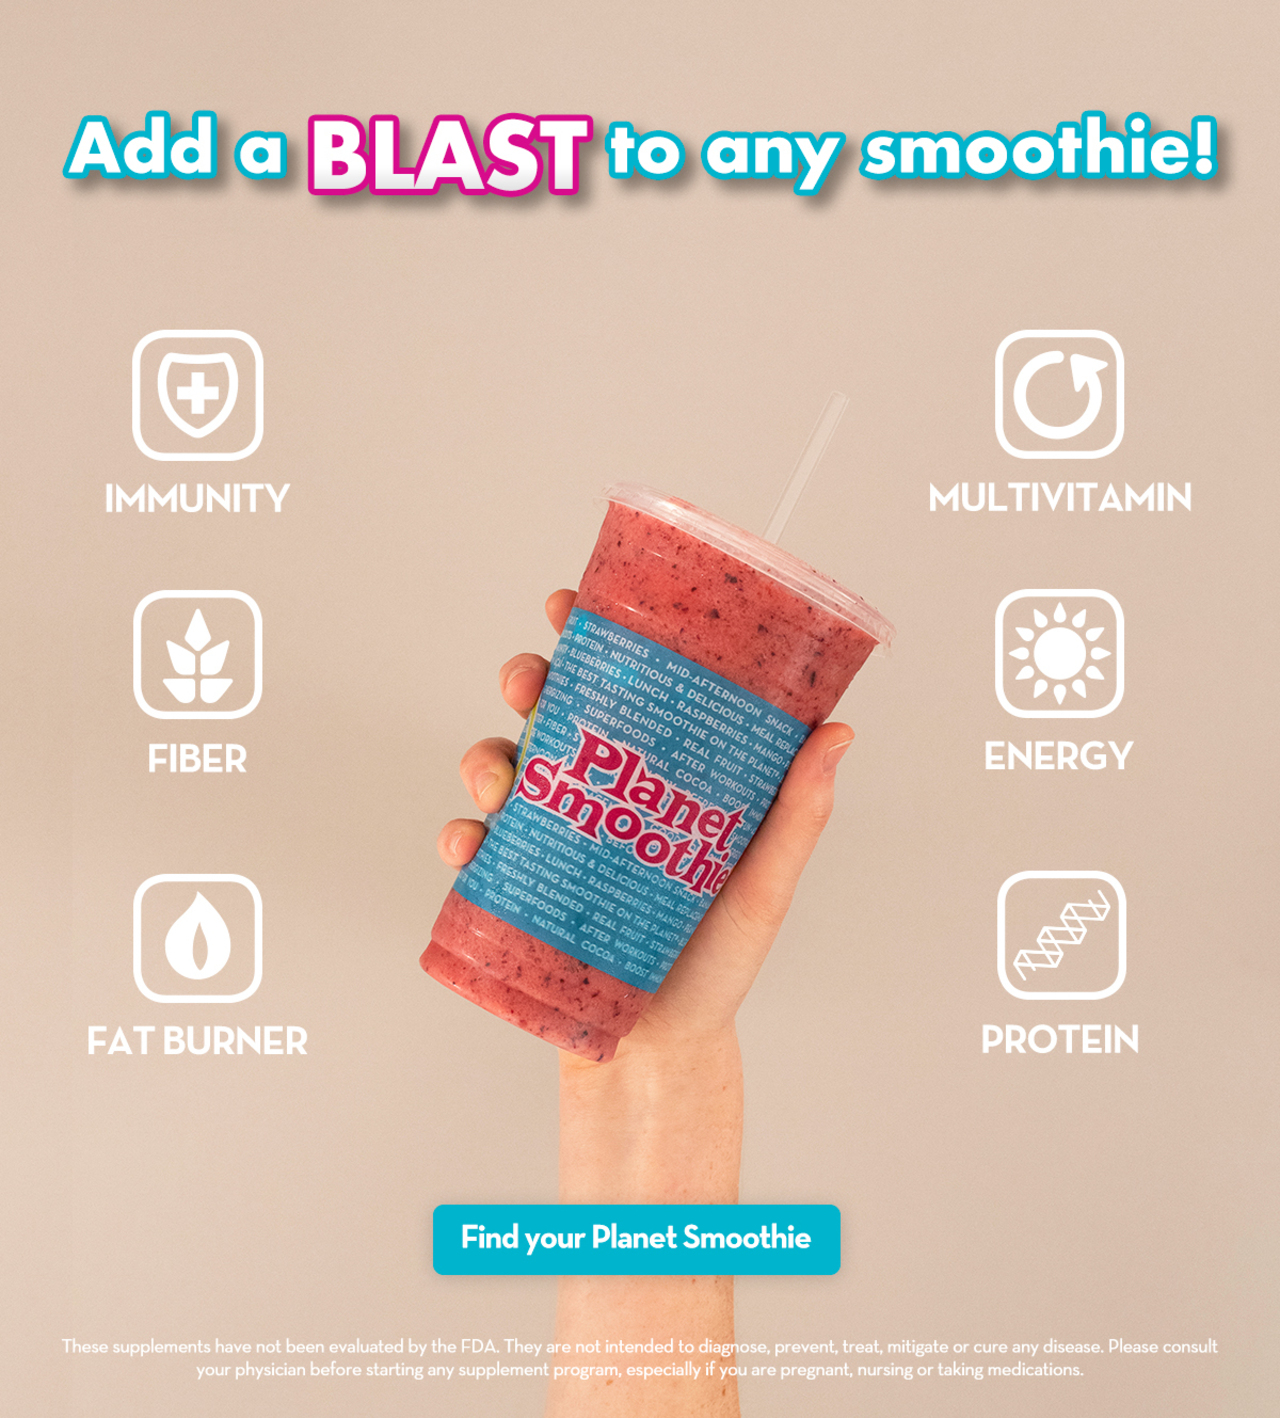 Add a blast to any smoothie! Immunity, Fiber, Fat Burner, Multivatamin, Energy, Protein. Find your Planet Smoothie. These supplements have not been evaluated by the FDA. They are not intended to dagnose, prevent, treat, mitigate or cure any disease. Please consult your physician before starting any supplement program, especially if you're pregnant, nursing or taking medications.